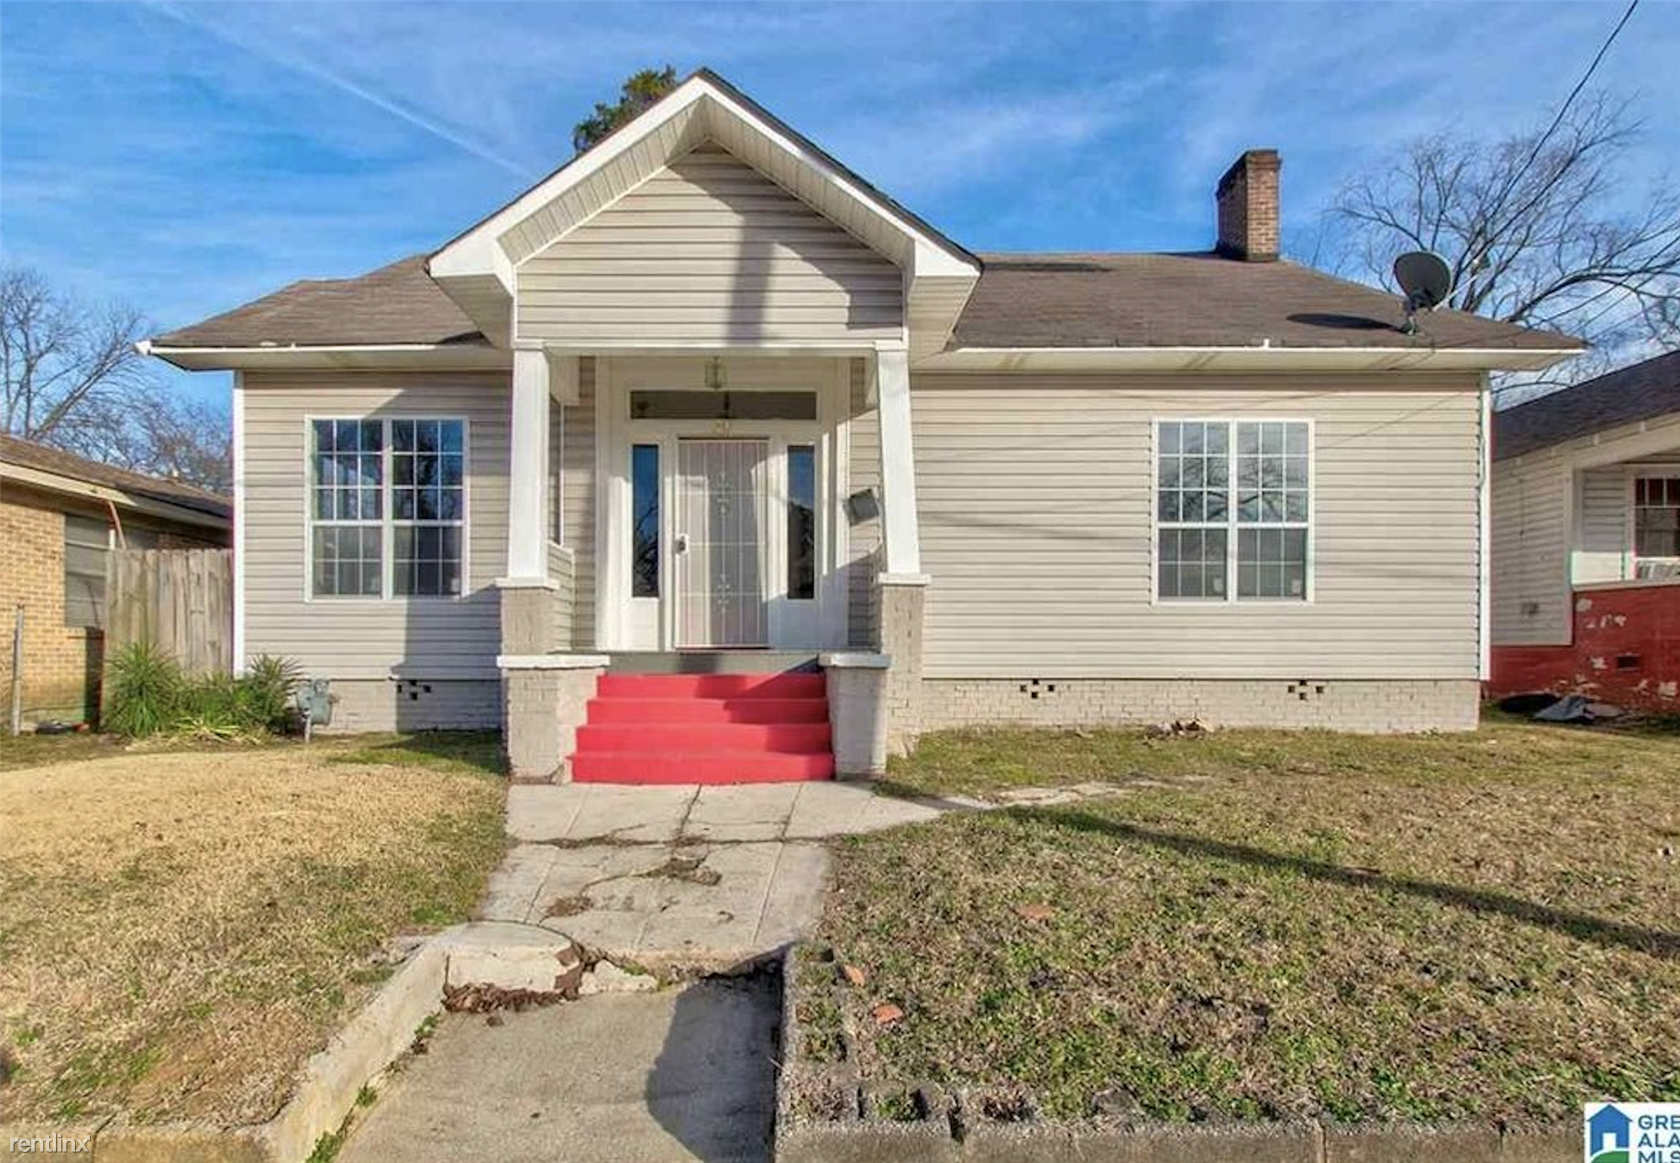 231 47th Place North - 900USD / month